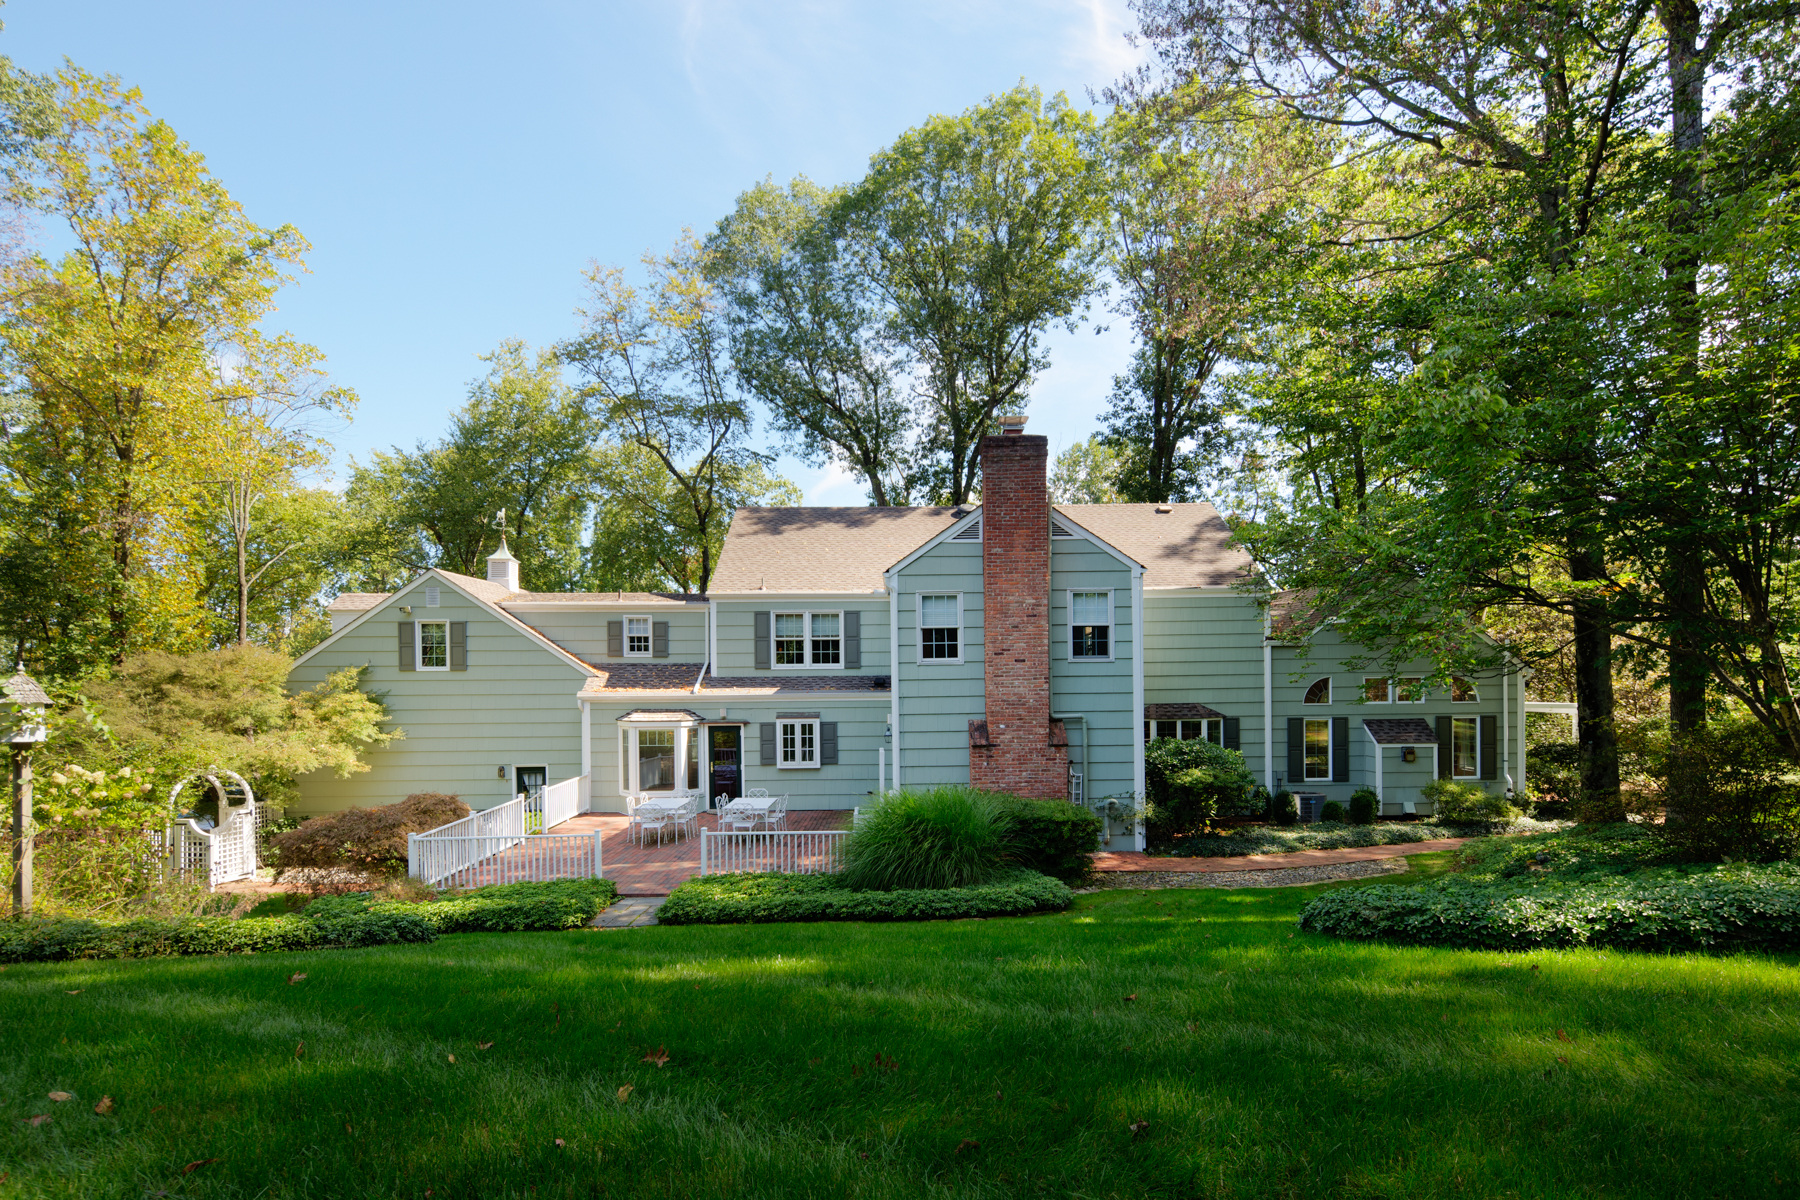 Moradia para Venda às Delightful Colonial 154 Deer Ridge Road, Basking Ridge, Nova Jersey 07920 Estados Unidos